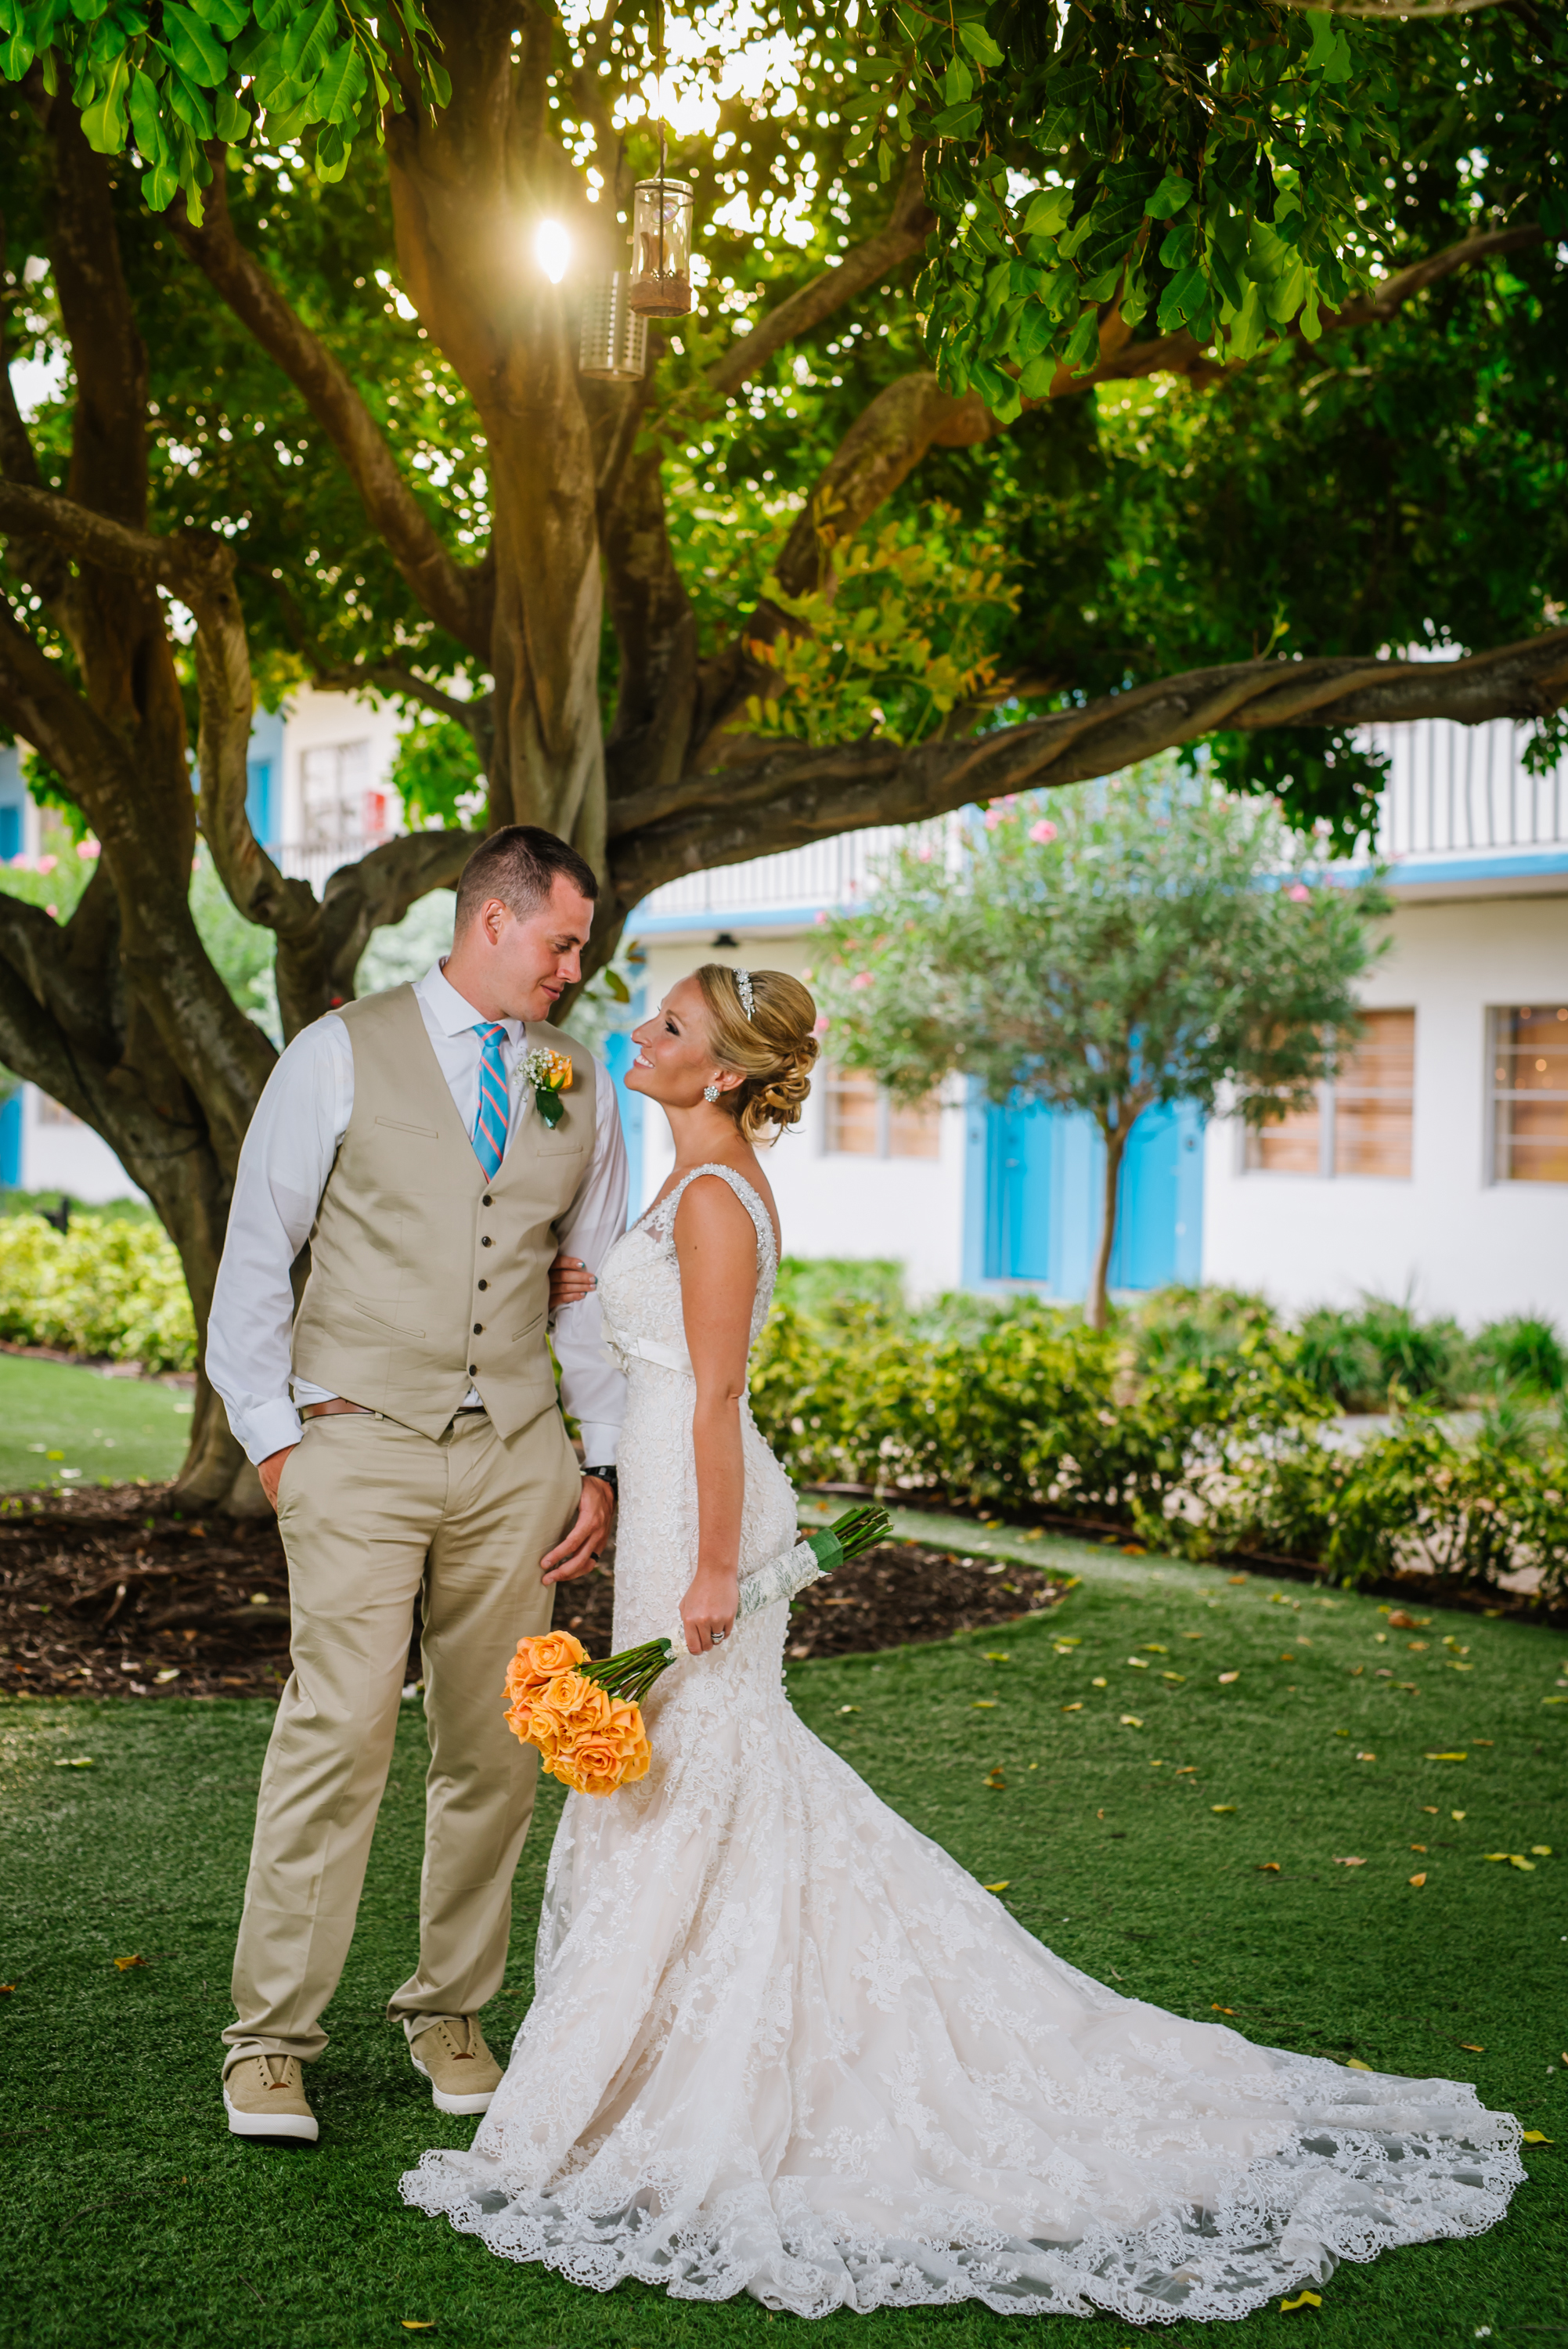 Josie and Joey had a vibrant and tropical wedding day at the Post Card Inn and I just love how the sun is coming through on their portrait...and that dress!! WOW!